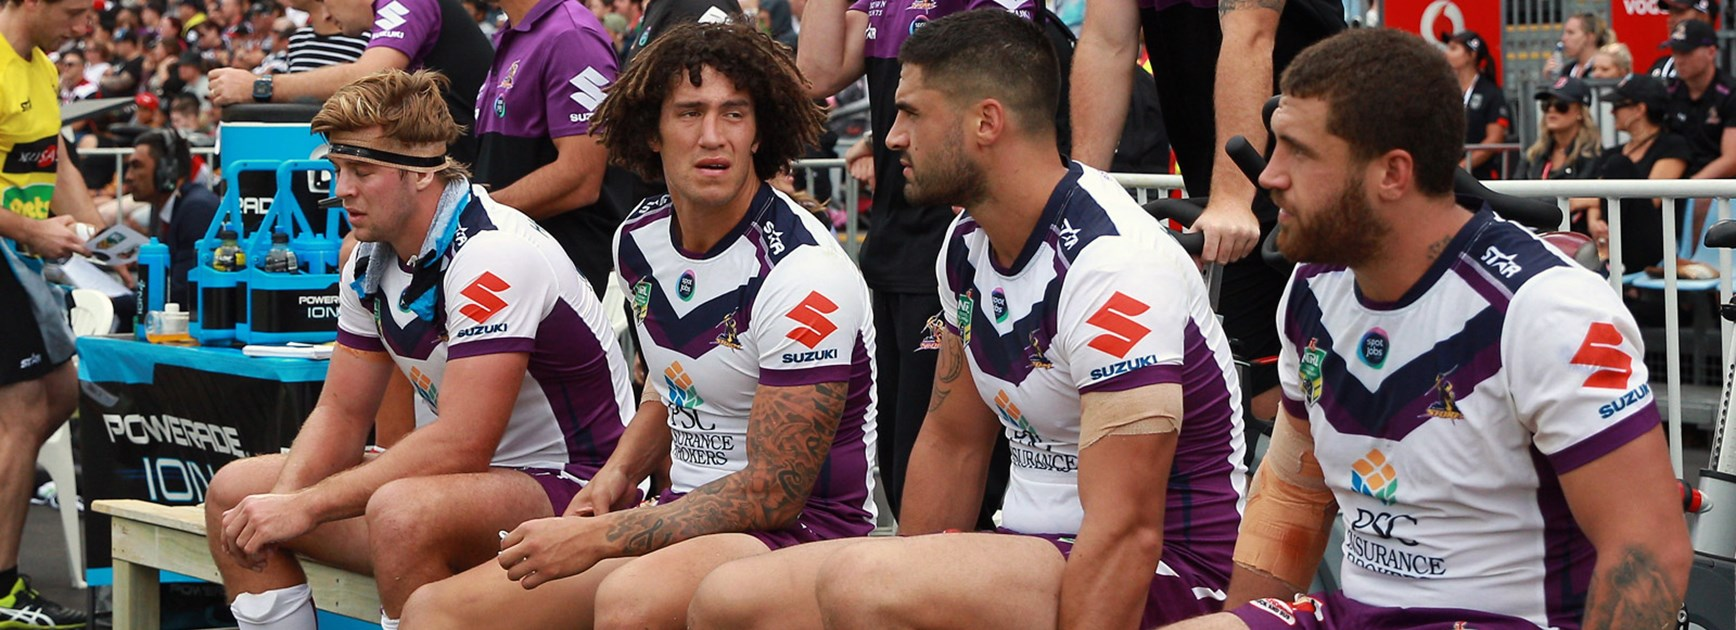 The Storm bench look on during their tight win over the Warriors in Round 3.